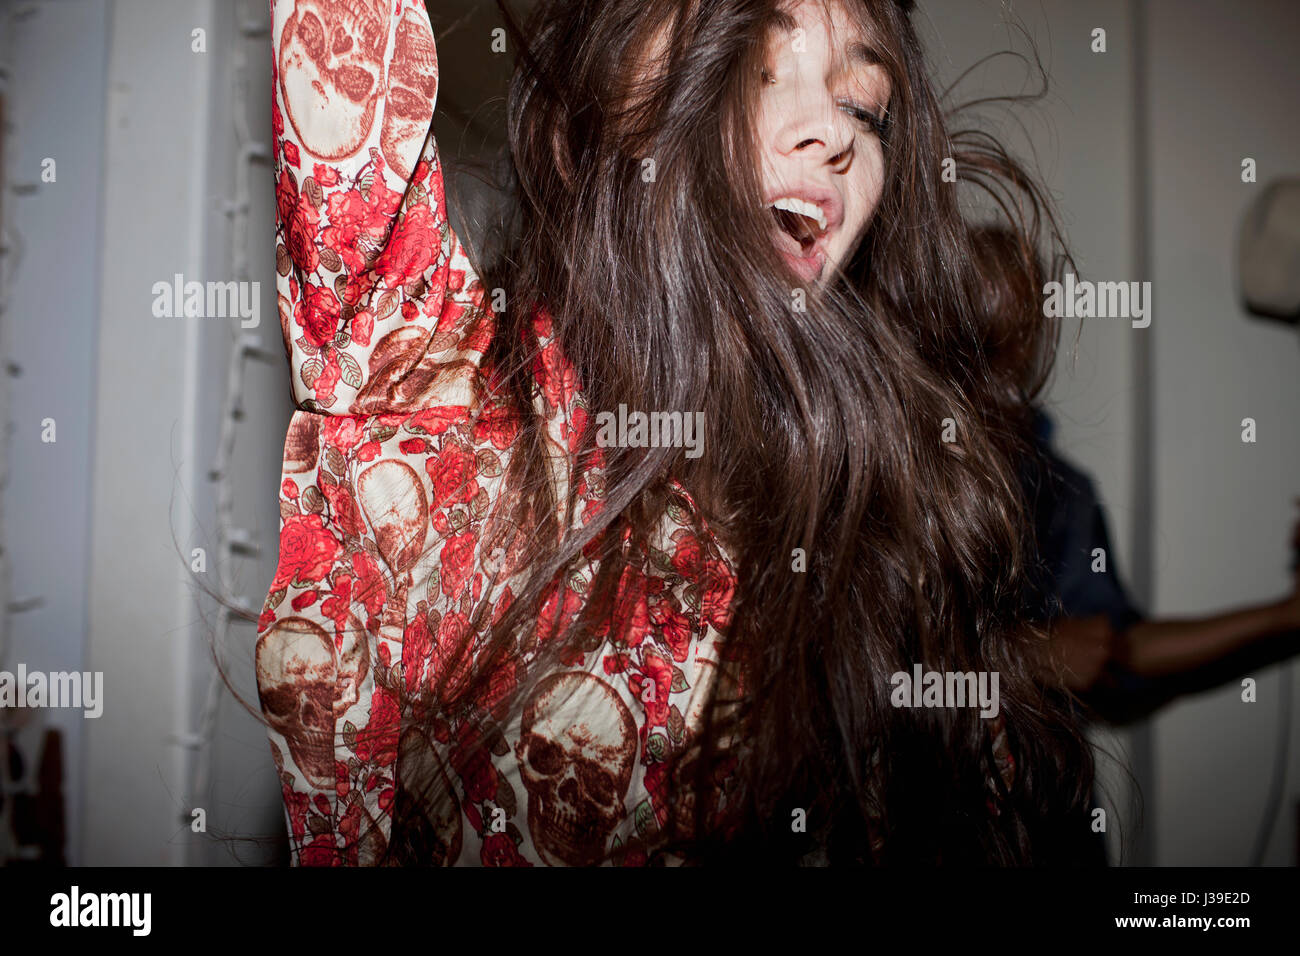 Young woman dancing at a party - Stock Image